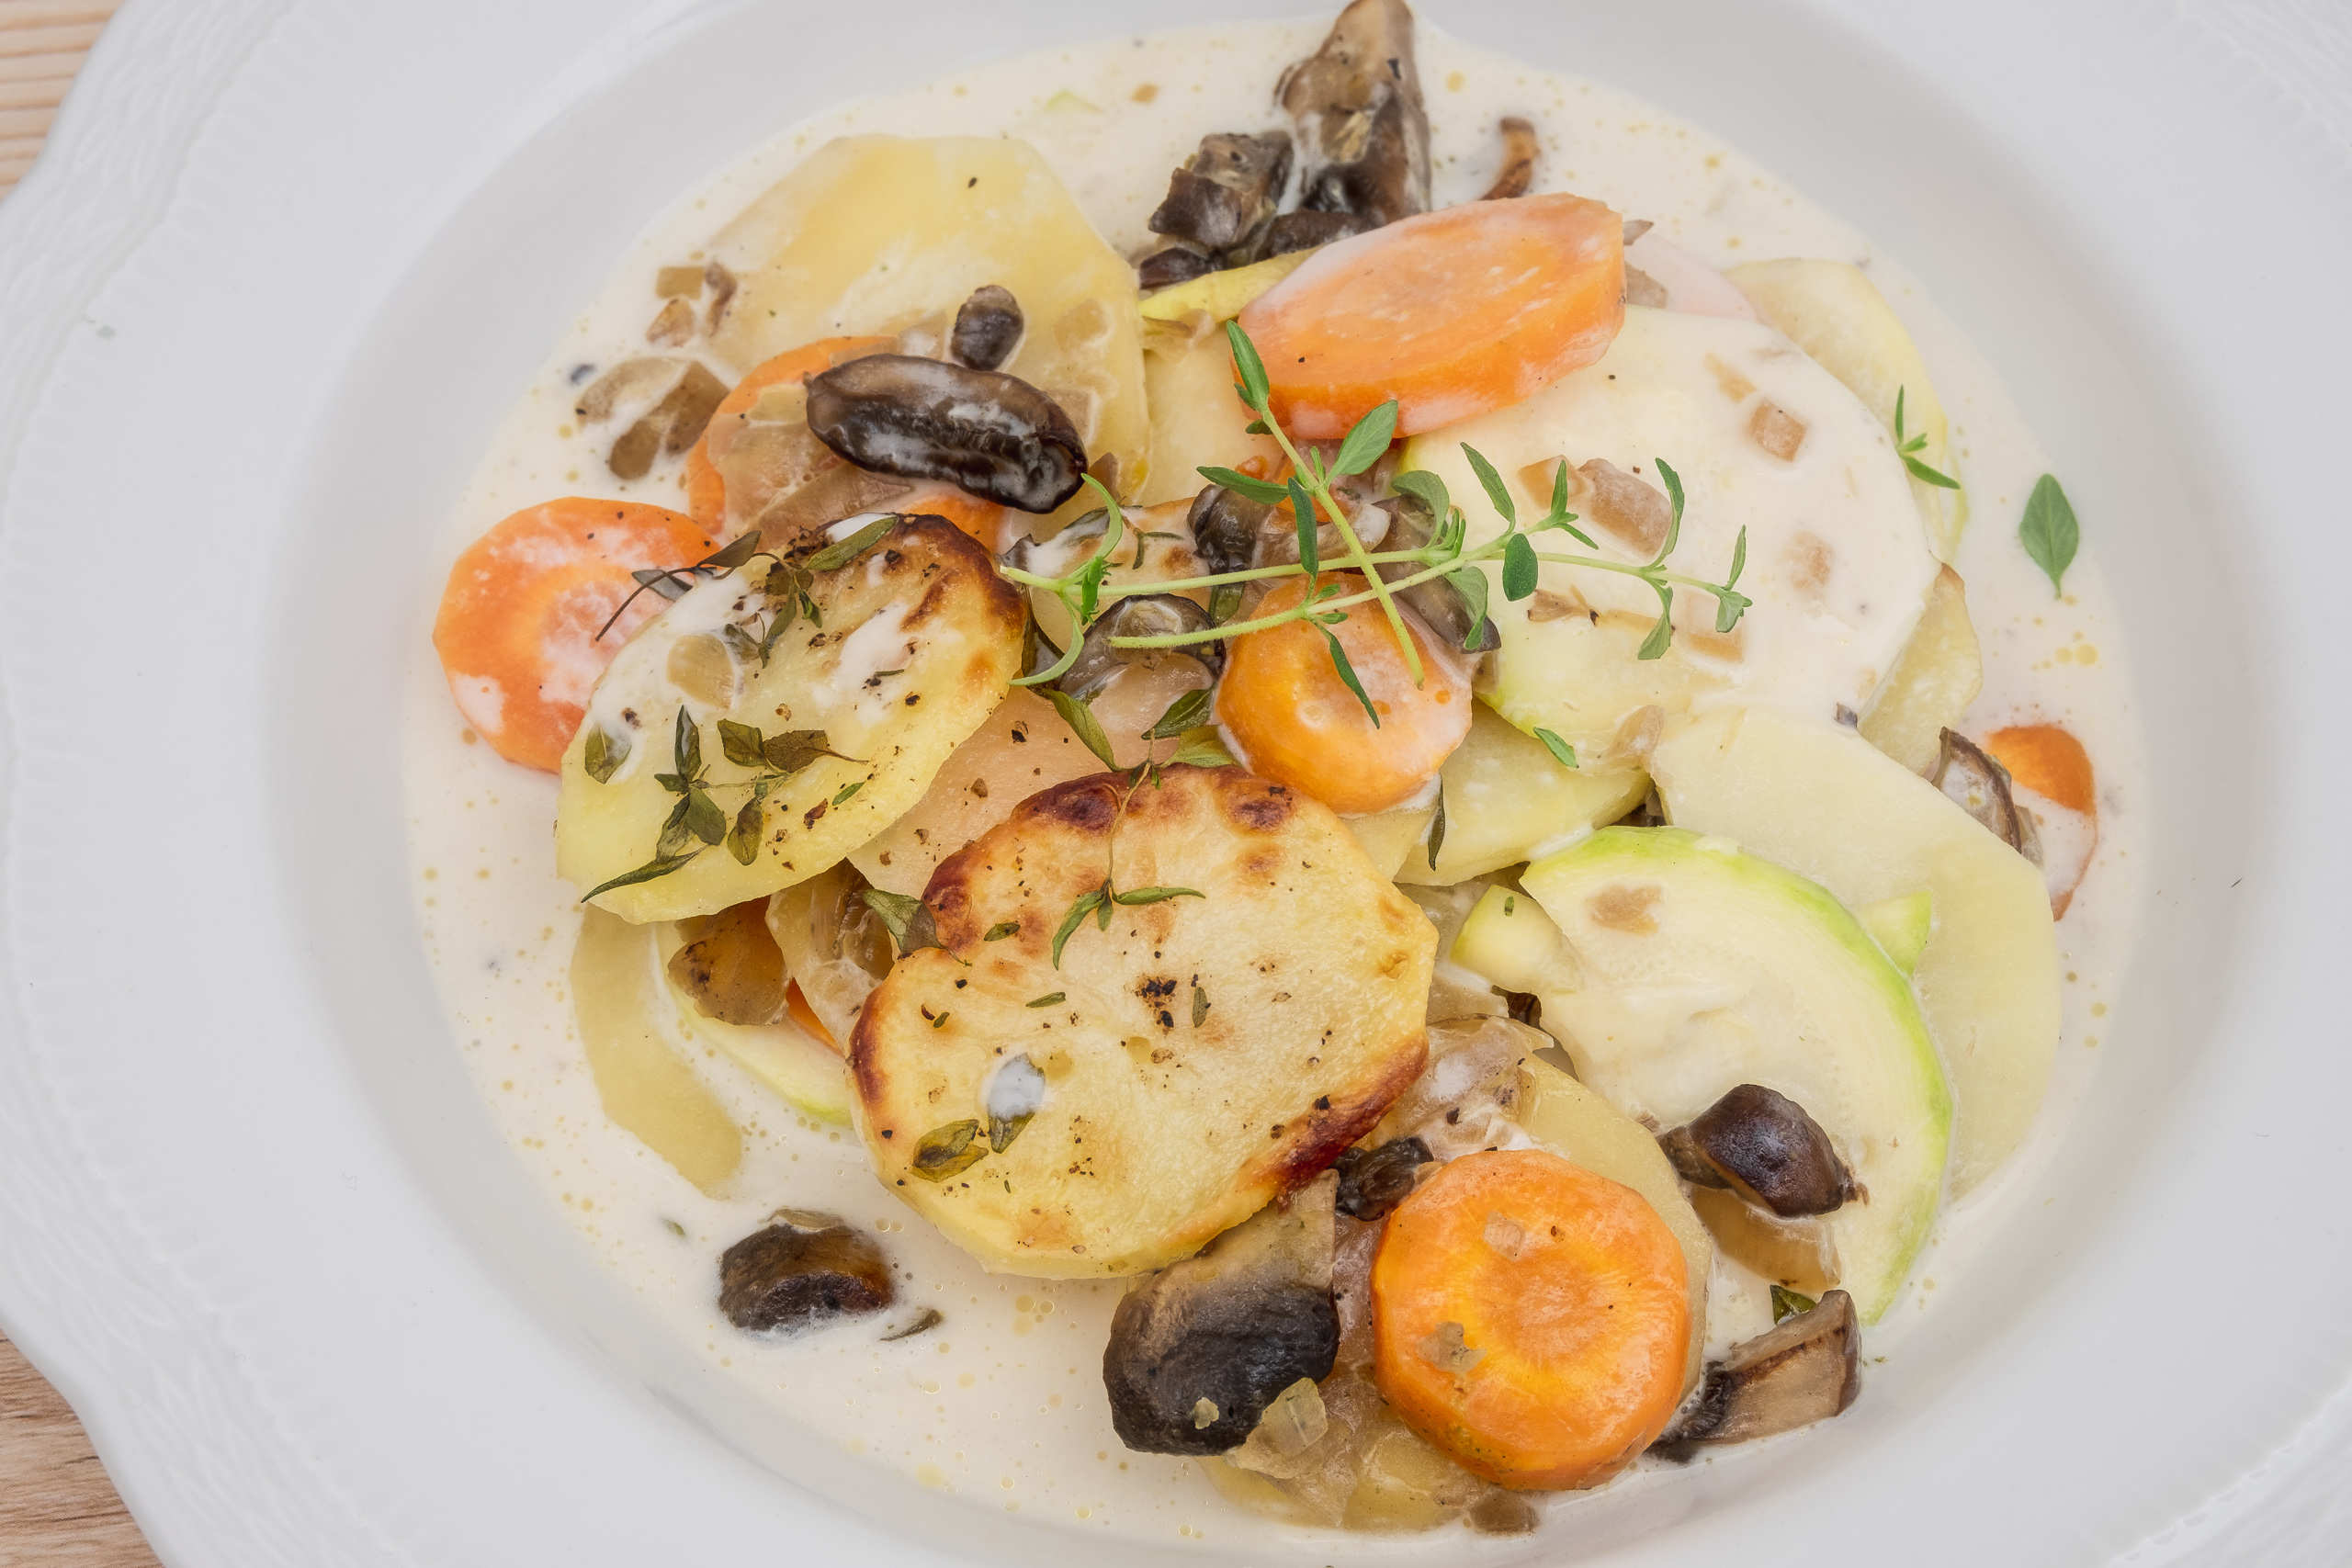 Zucchini gratin with potatoes and thyme